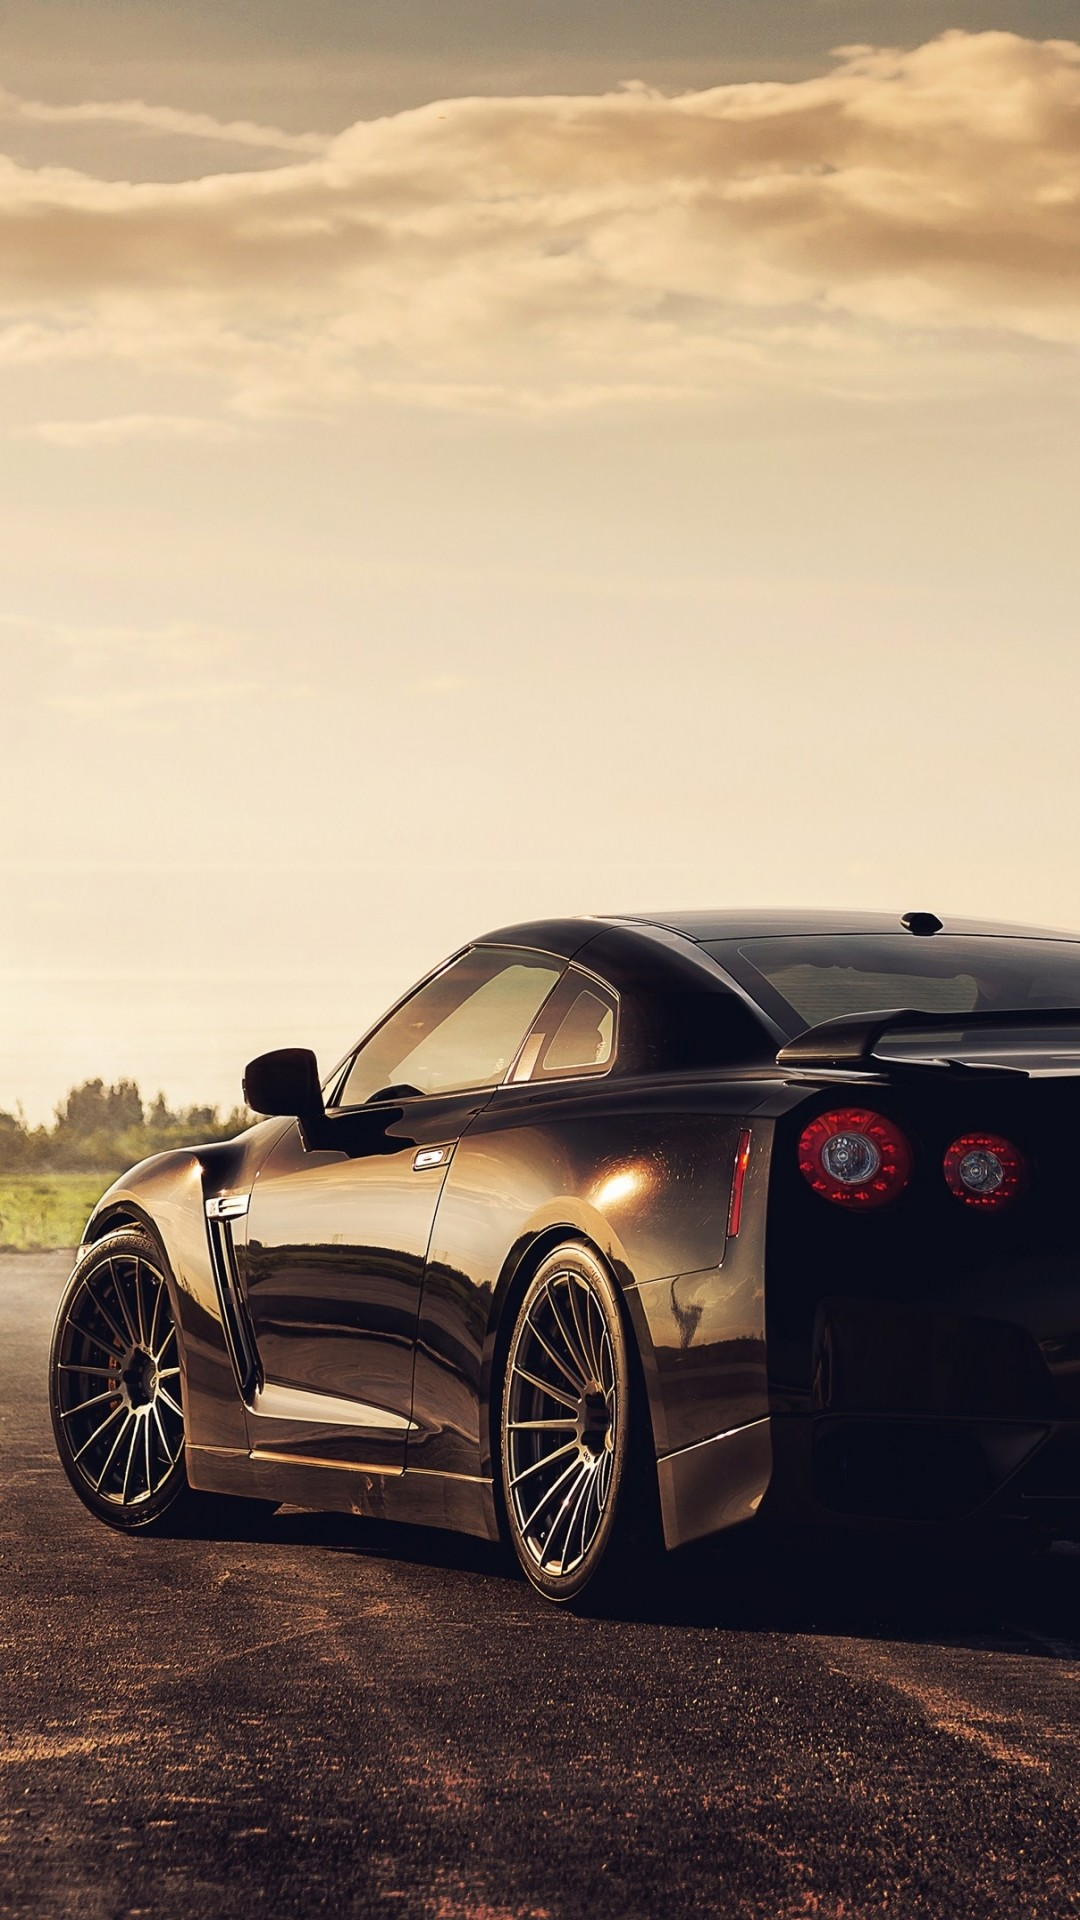 Vintage Car Hd Wallpapers For Pc Nissan Gtr Iphone 6 Wallpaper 79 Images